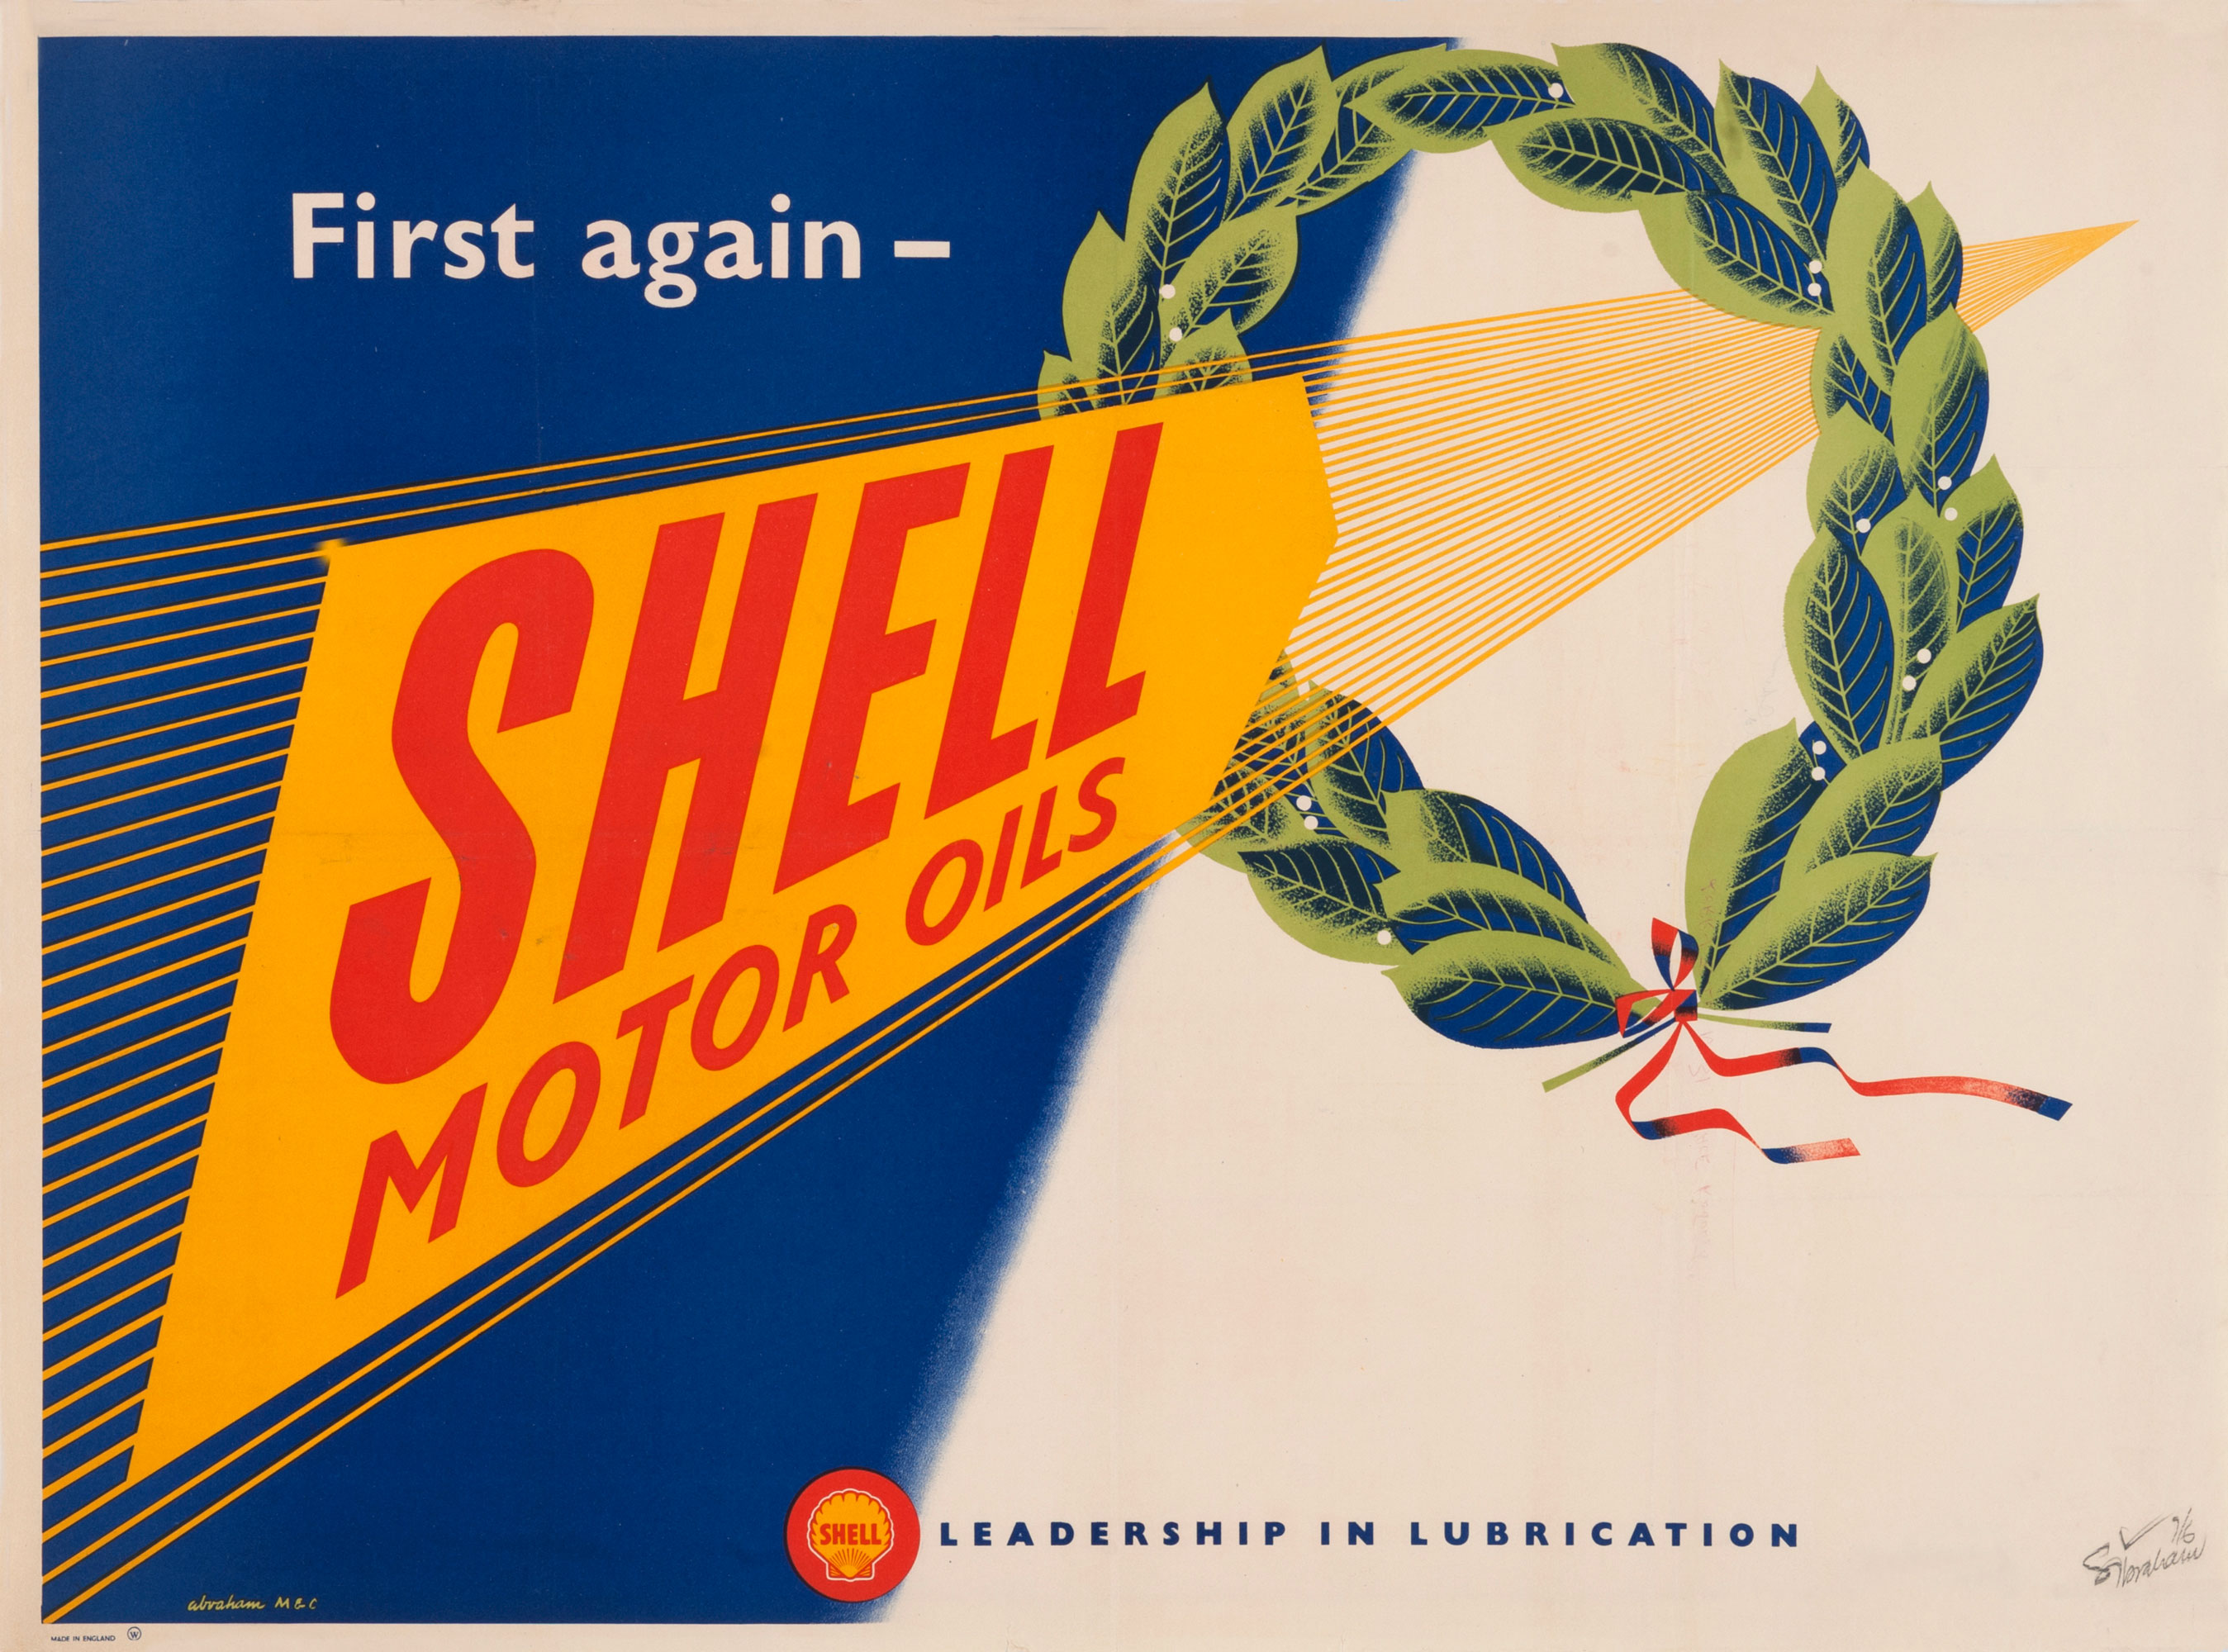 """Shell poster number 1531, First again (1952) by Syd Abraham. Poster shows a graphic of a laurel wreath and the text """"First again - Shell Motor Oils""""."""